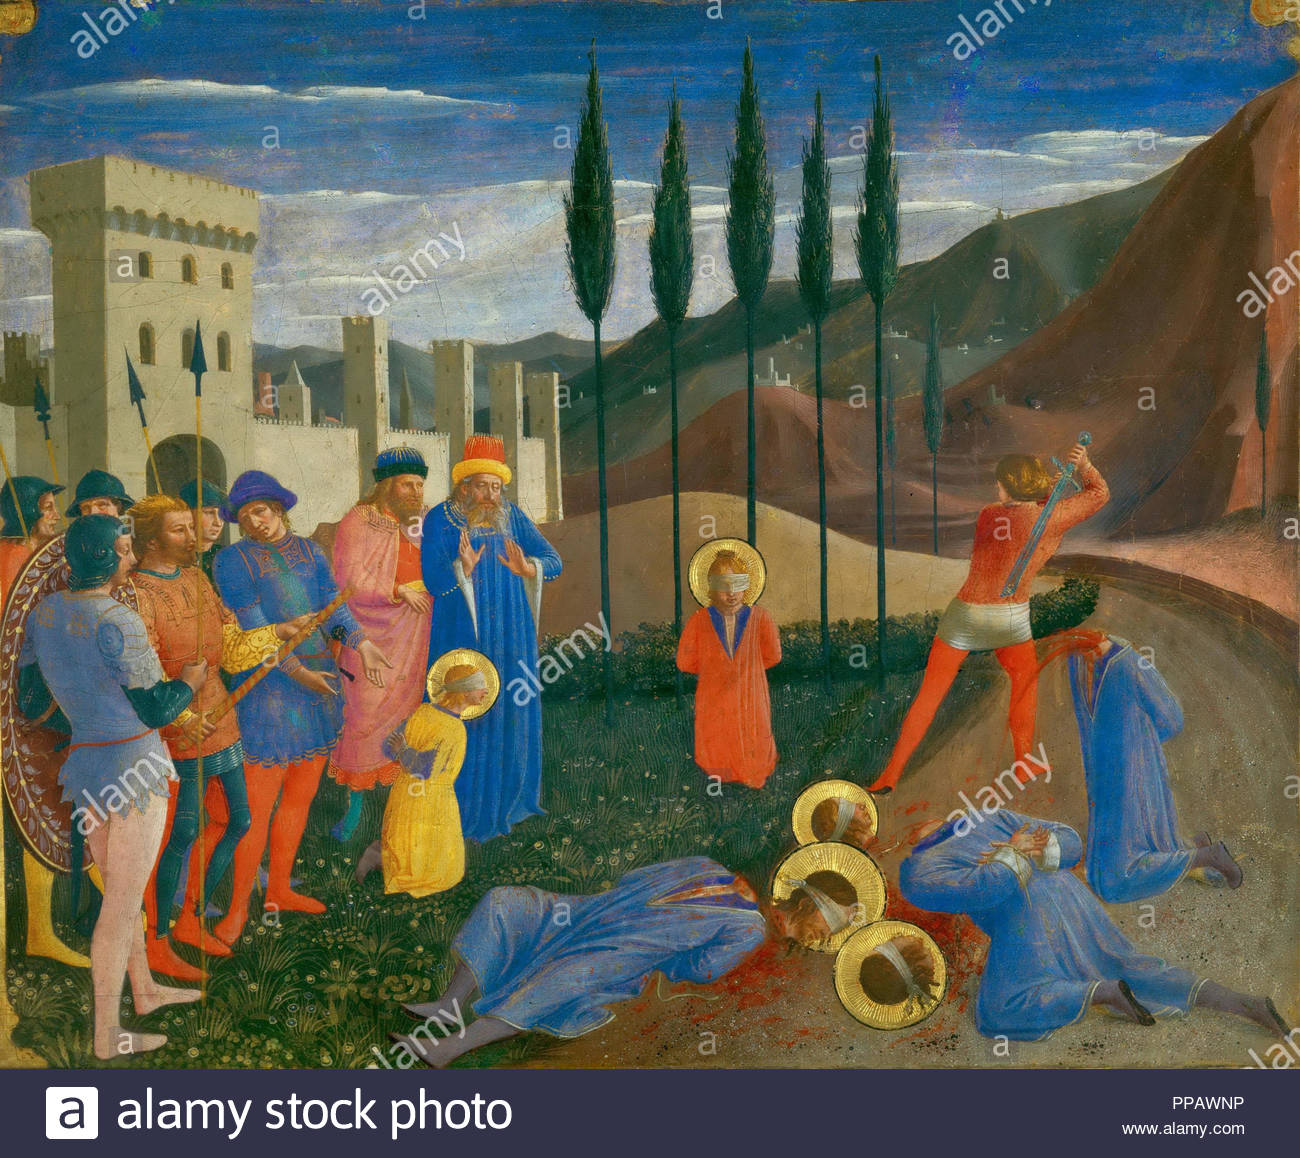 The Beheading of Saint Cosmas and Saint Damian. Museum: Musee du Louvre, Paris. Author: FRA ANGELICO. - Stock Image